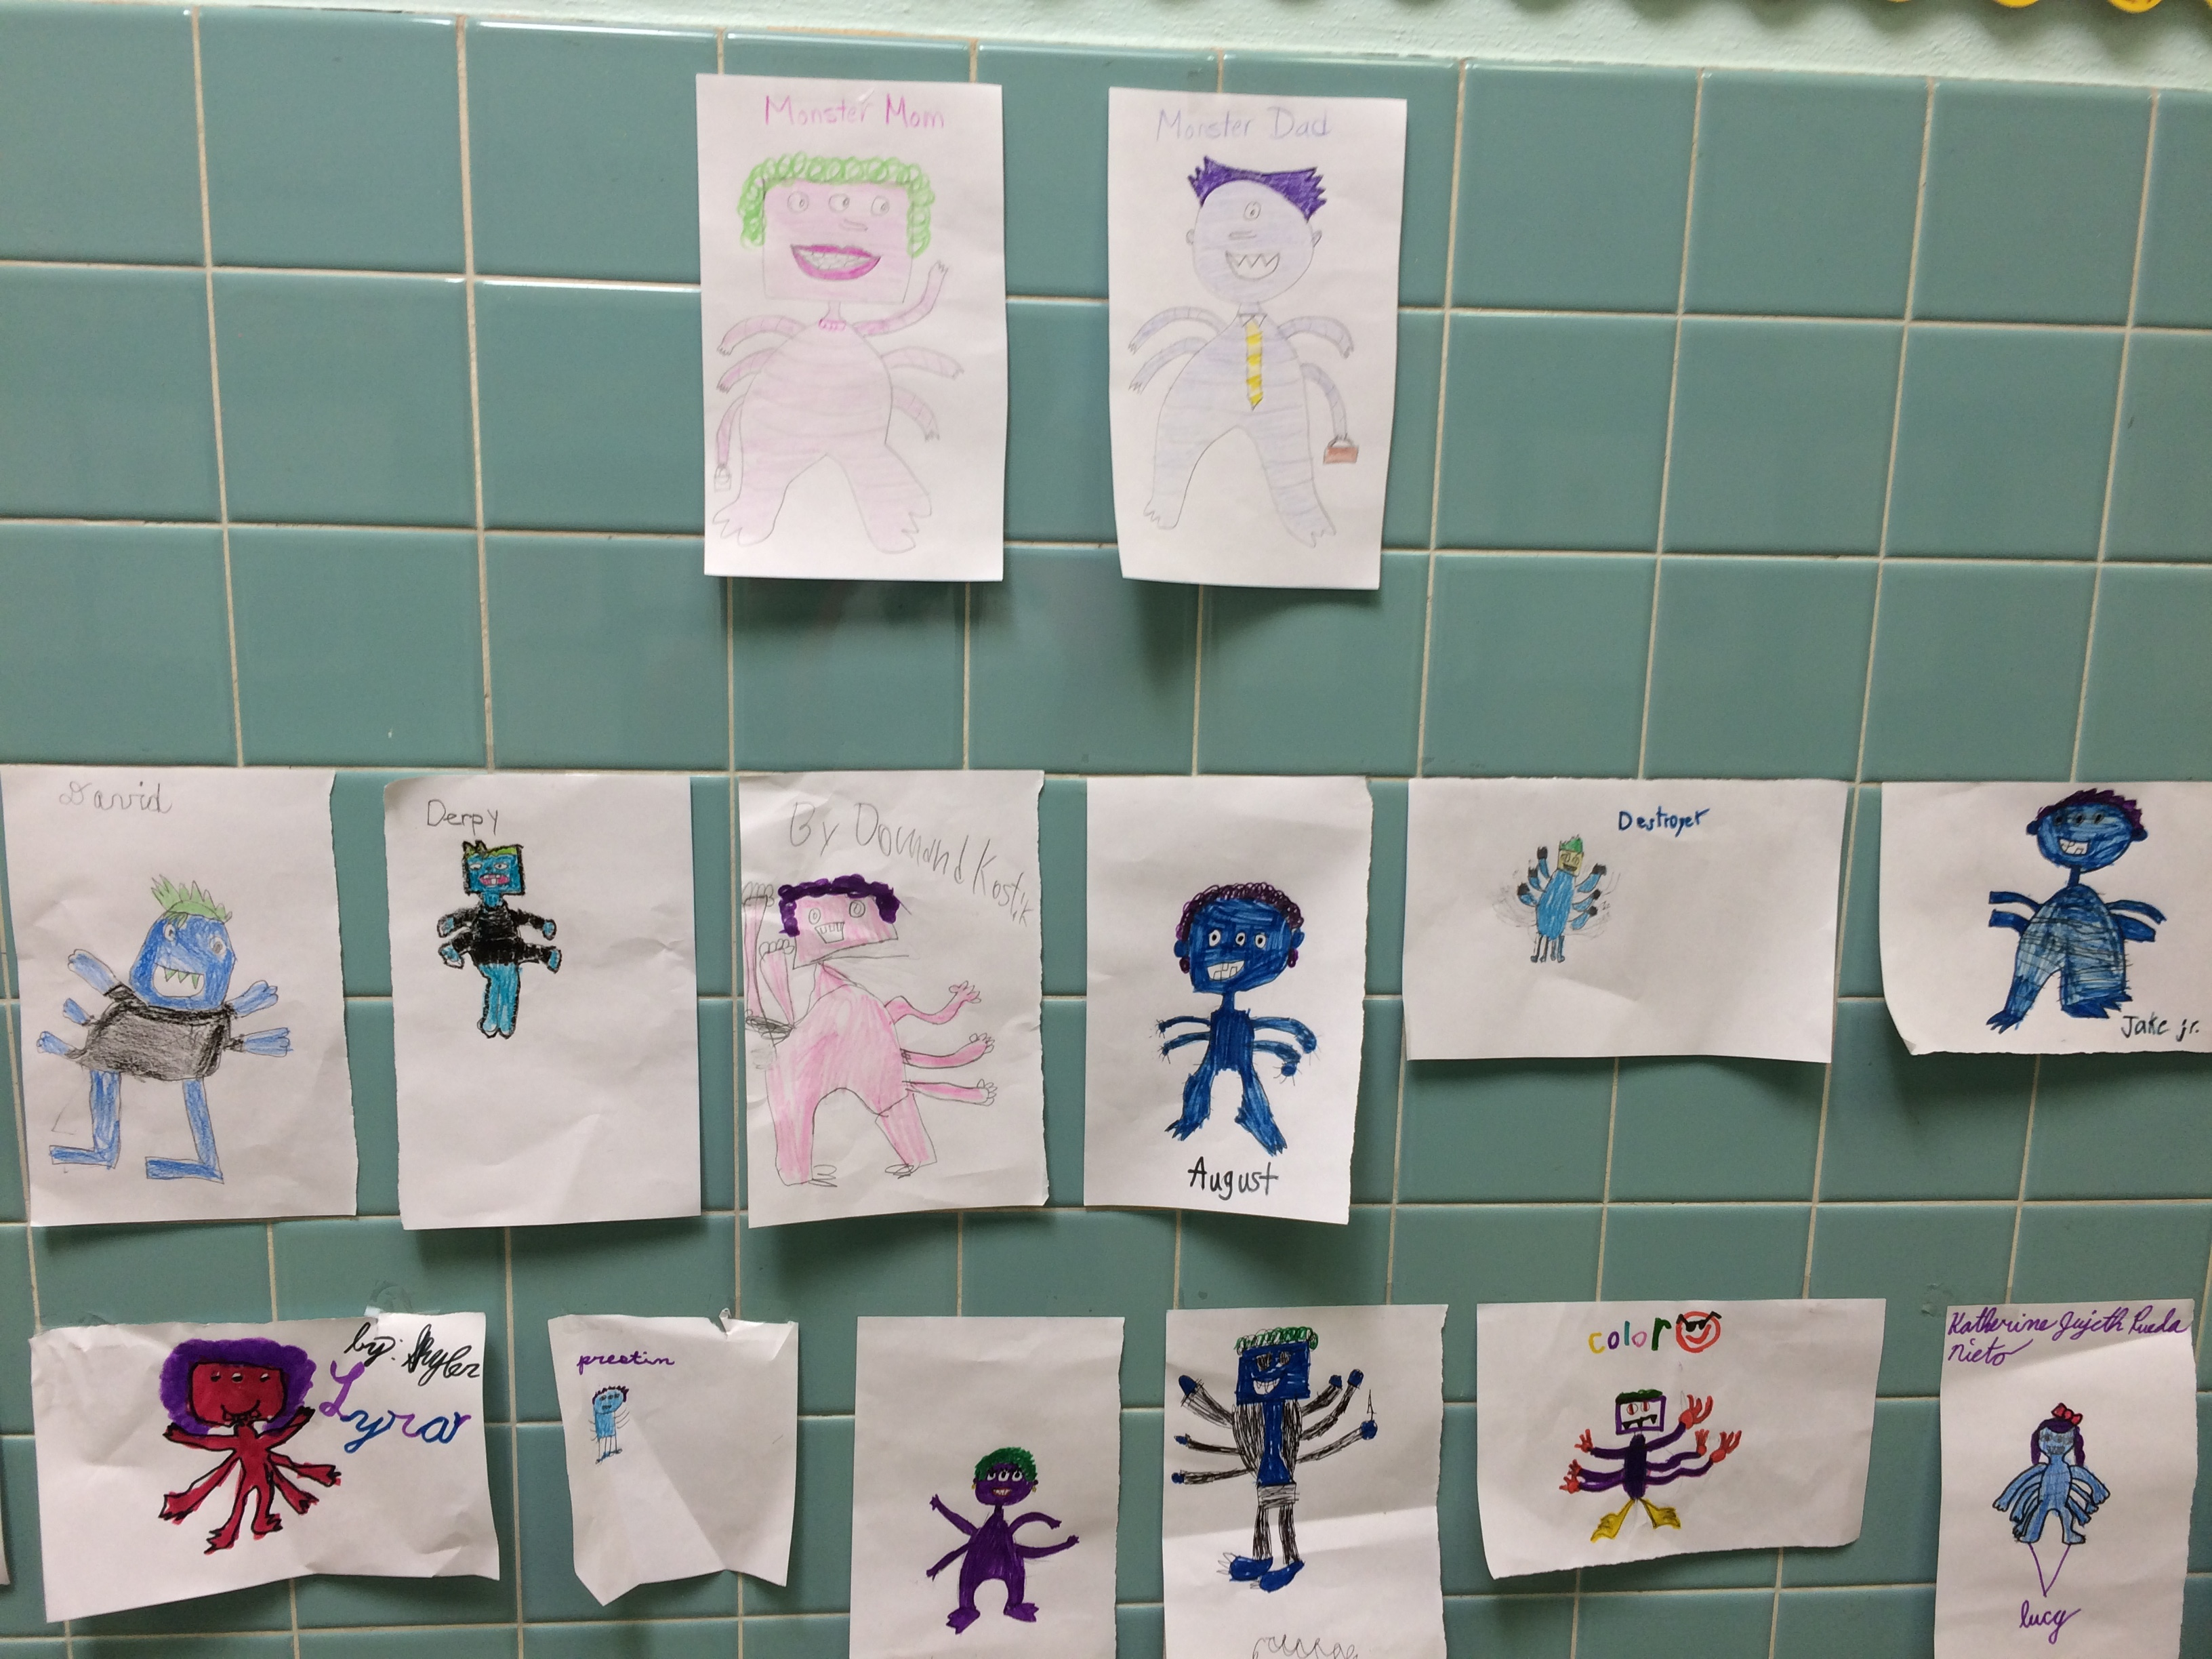 Studying inherited traits and were challenged to create offspring of two different monsters using specified traits.